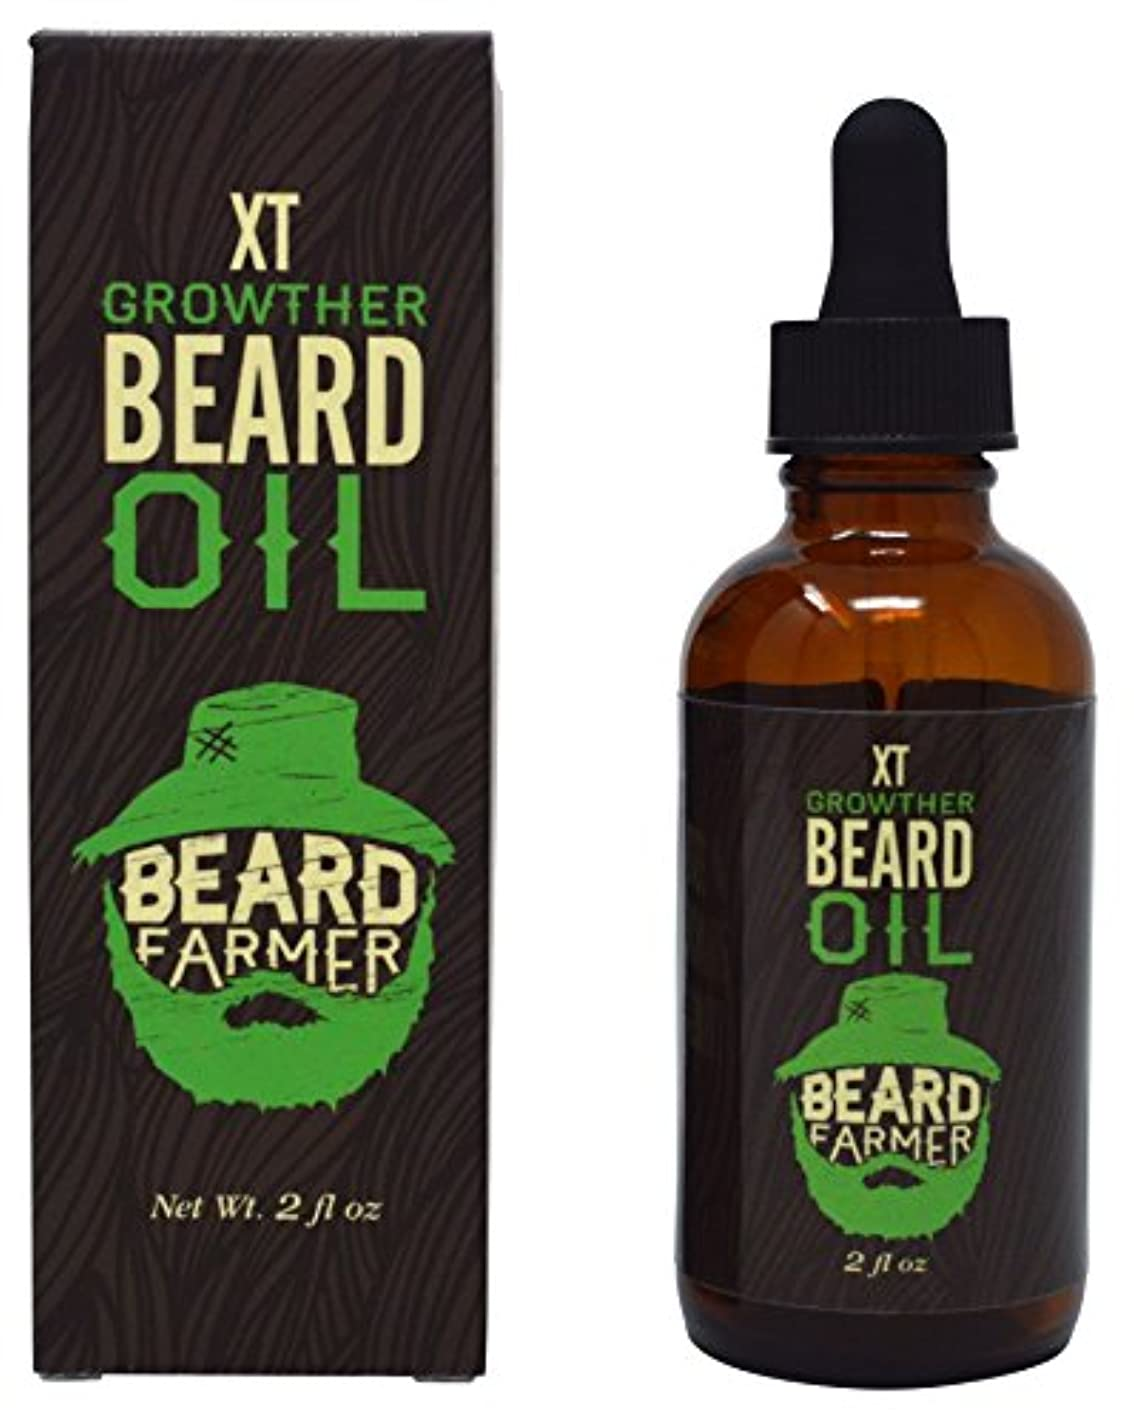 ペパーミント第二三Beard Farmer - Growther XT Beard Oil (Extra Fast Beard Growth) All Natural Beard Growth Oil 2floz